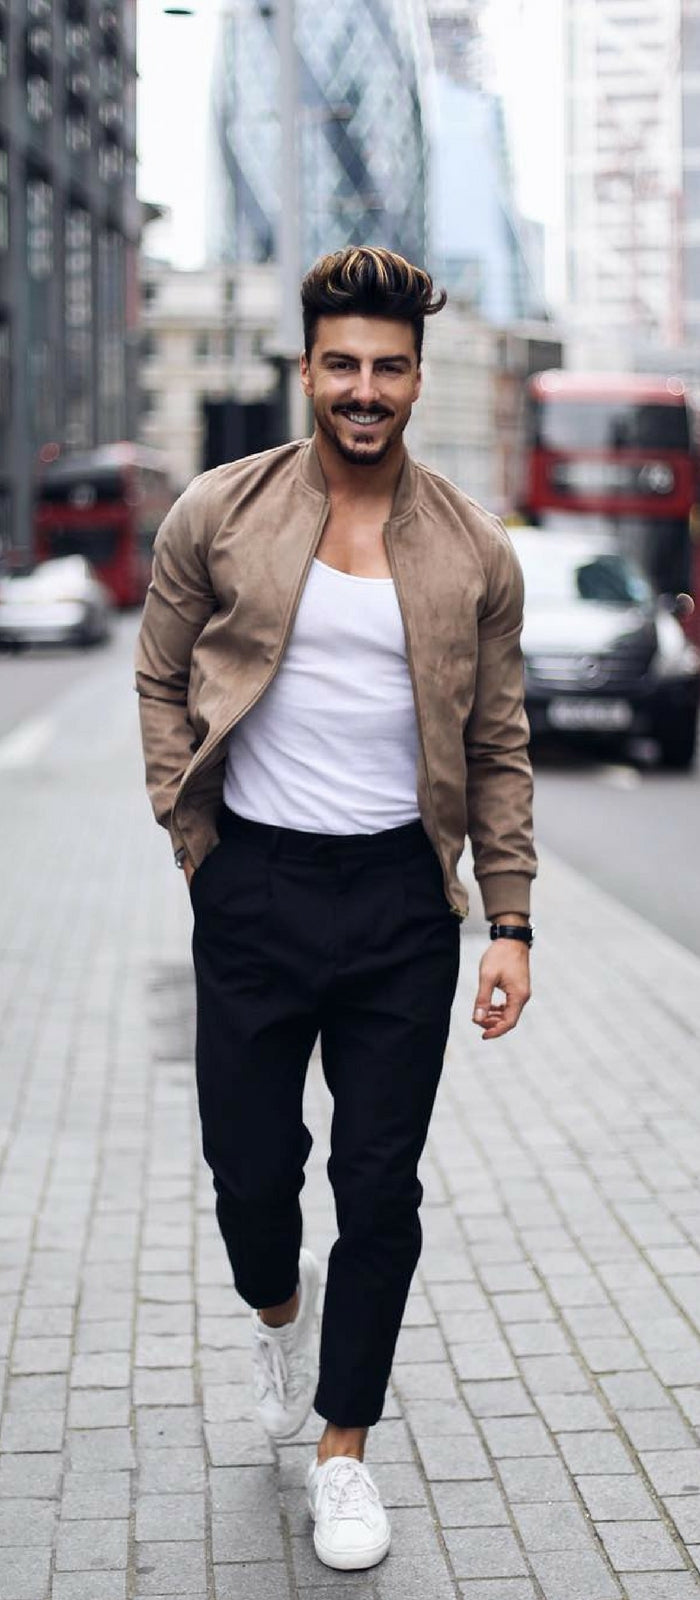 9 Beyond Cool Street Styles Looks For Men - LIFESTYLE BY PS